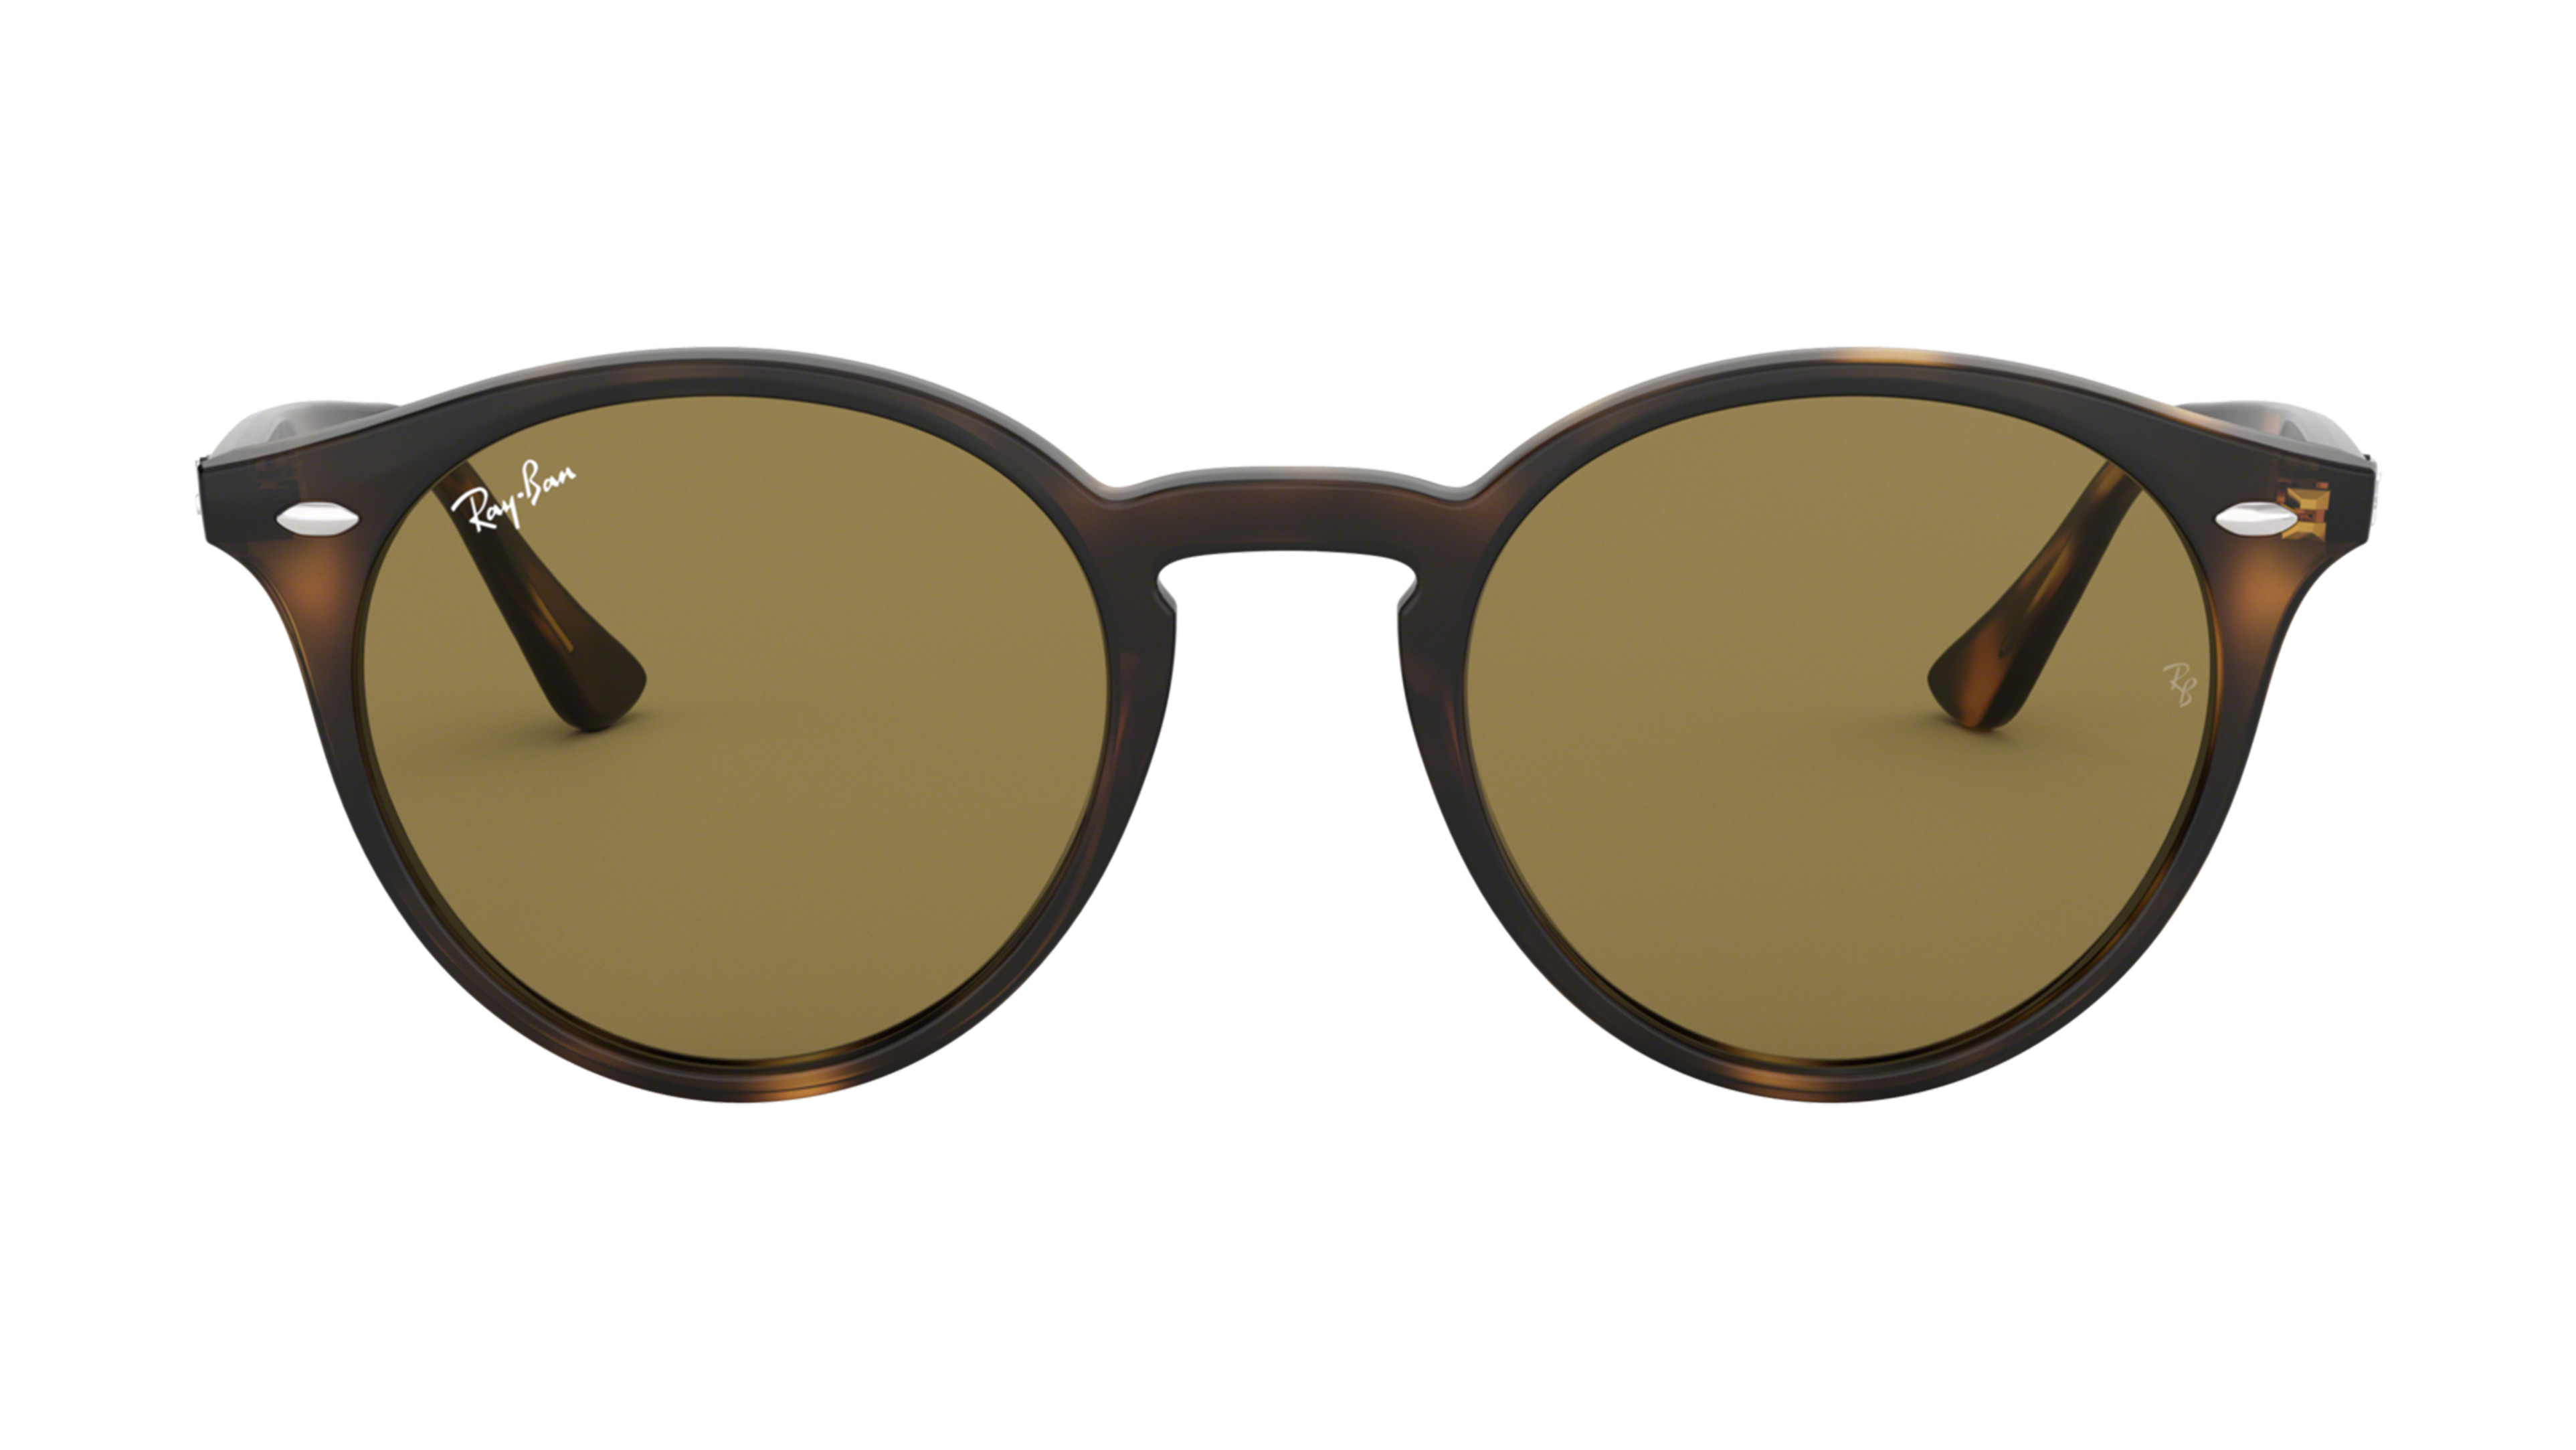 8053672546958-front-Ray-Ban-0RB2180-710-73